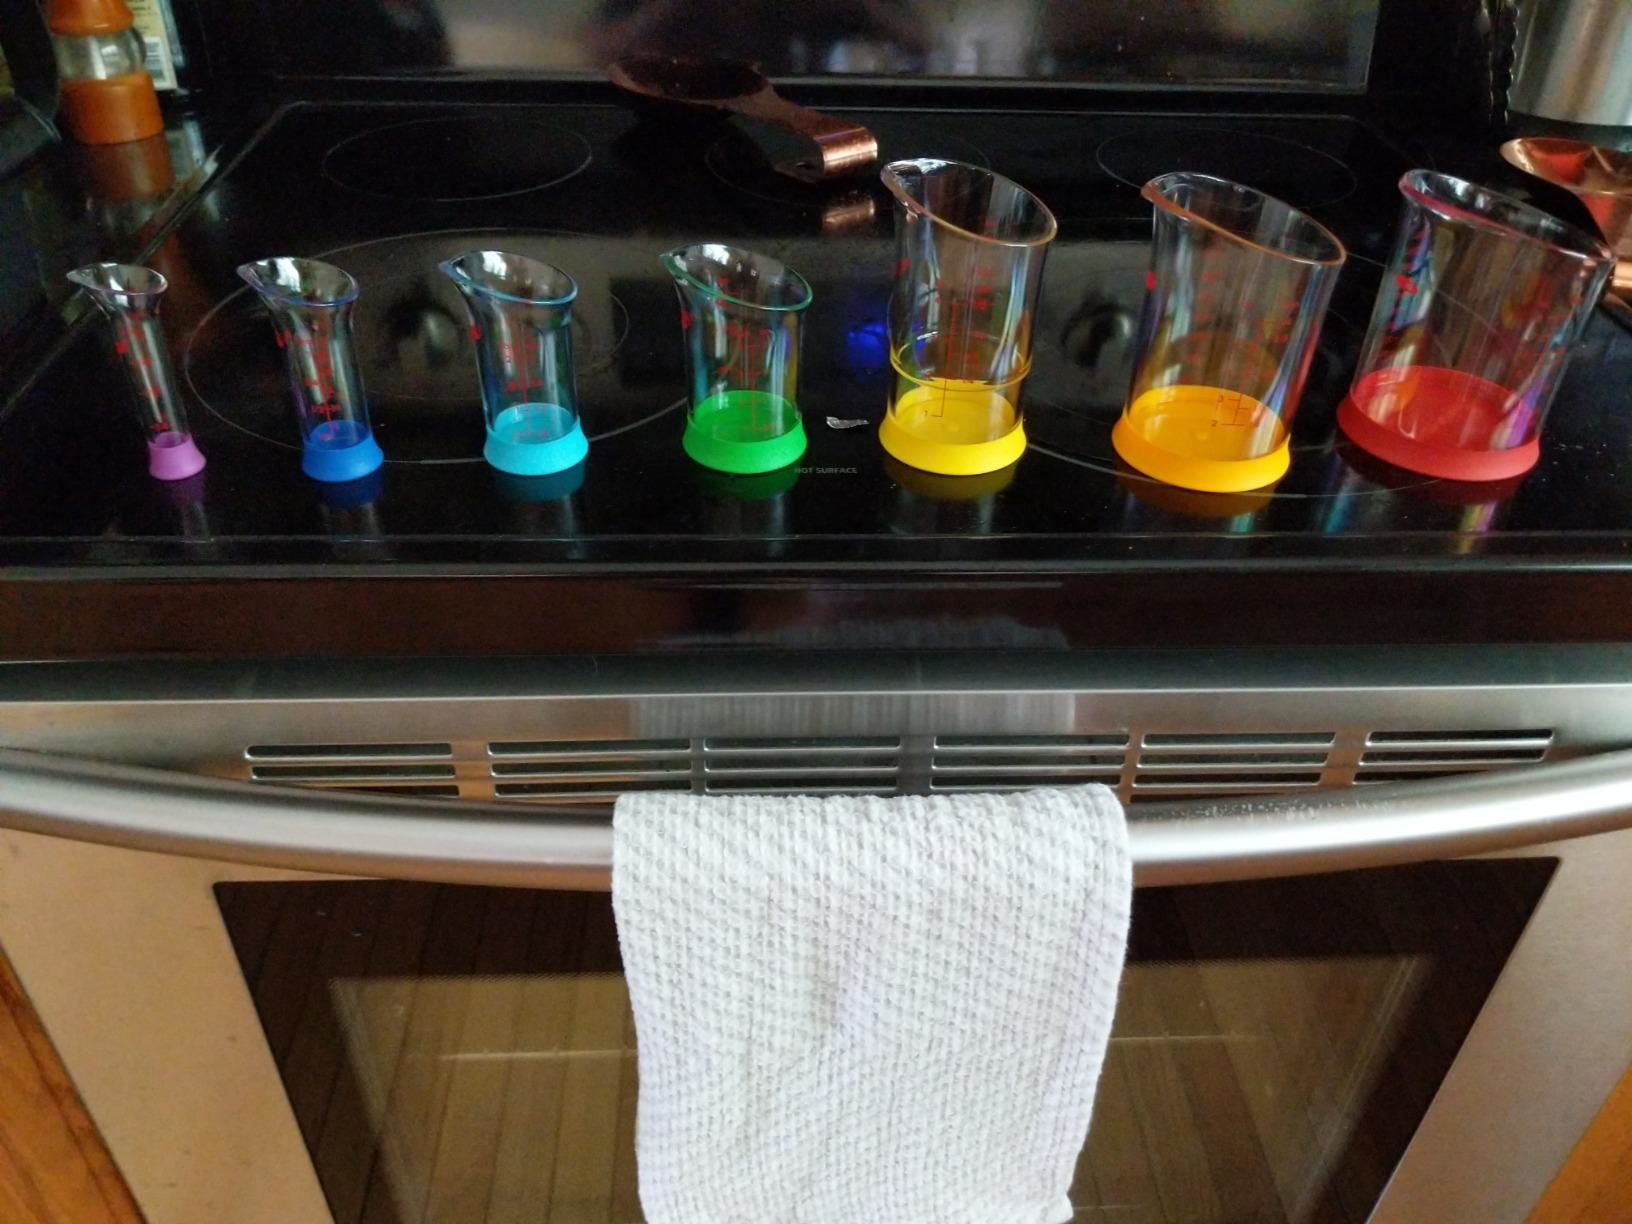 The seven beakers, which each can stand upright on their own